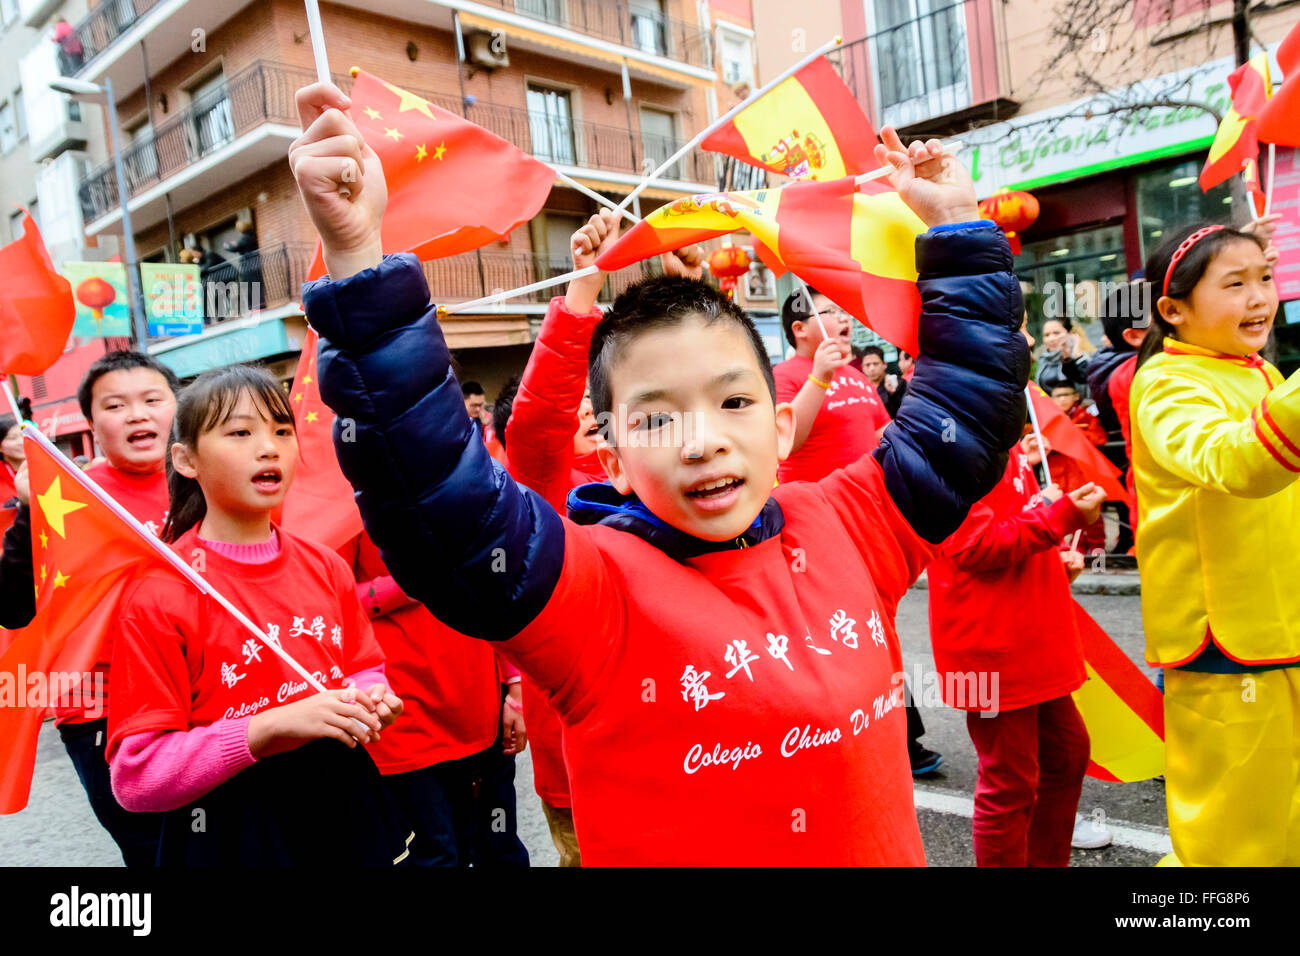 13th February 2016 Madrid, Spain. A young boy from the Chinese College in Madrid looking at the camera and waving - Stock Image